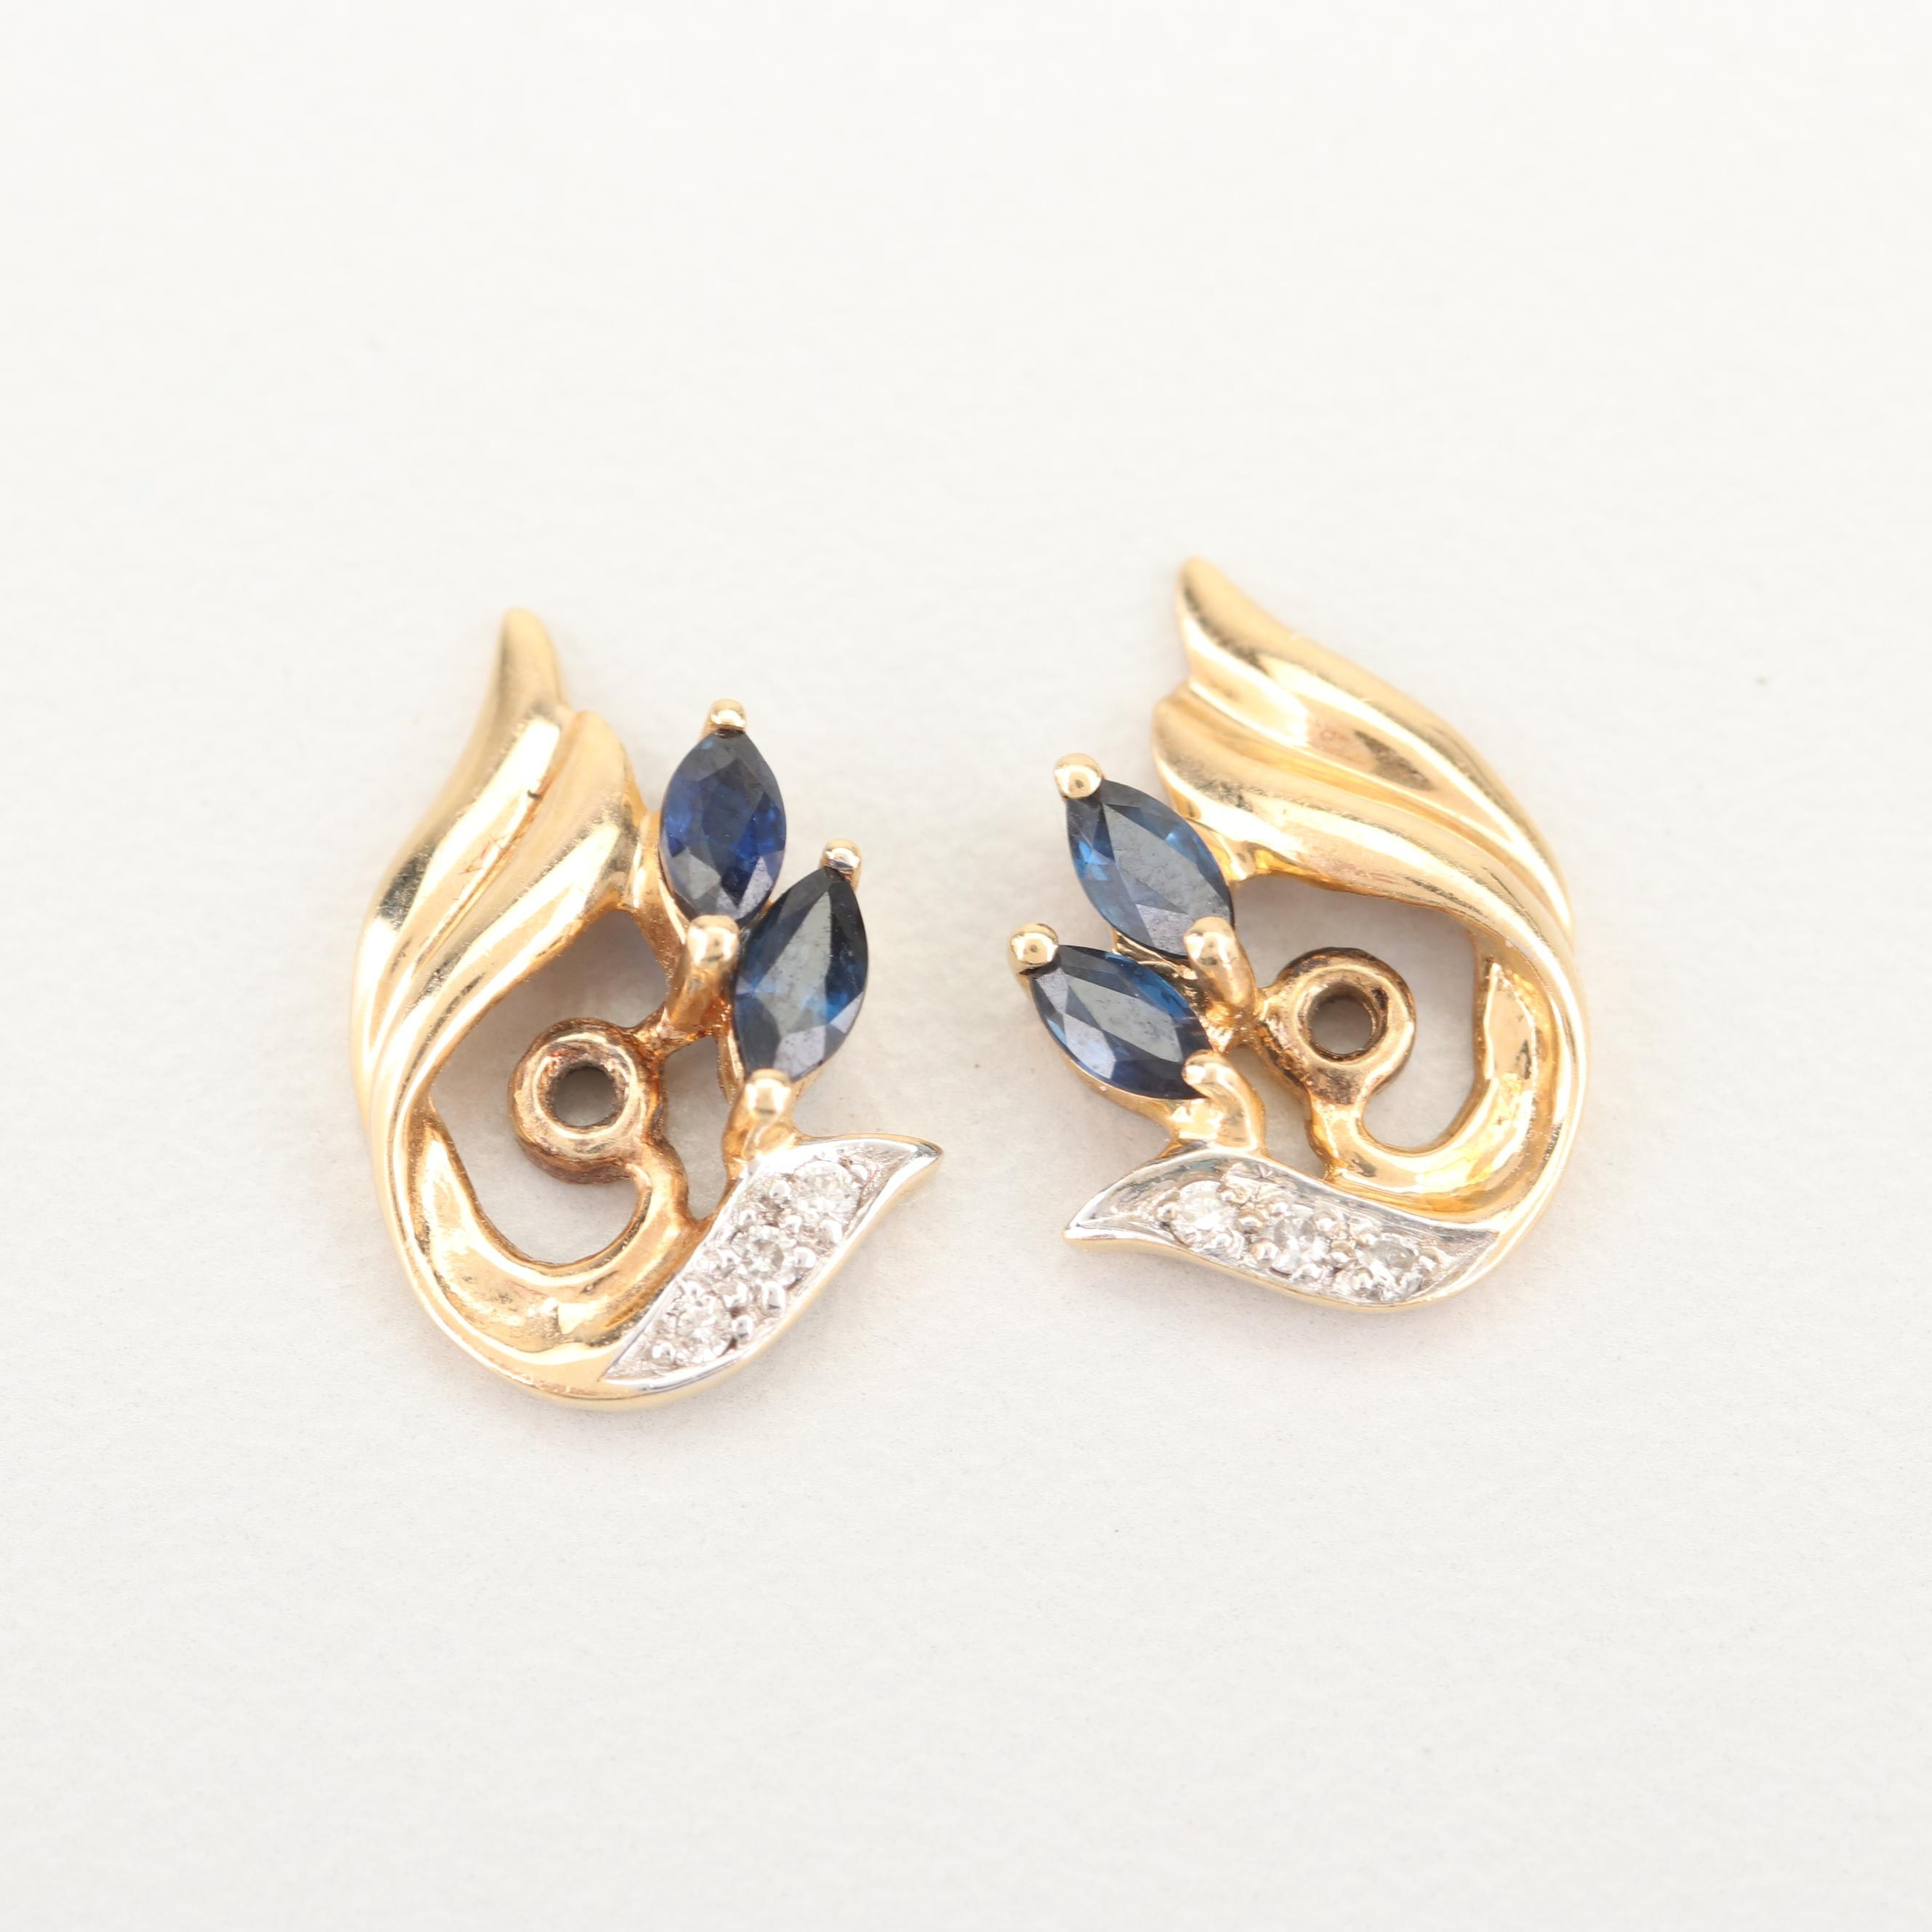 14K Yellow Gold Sapphire and Diamond Earring Jackets